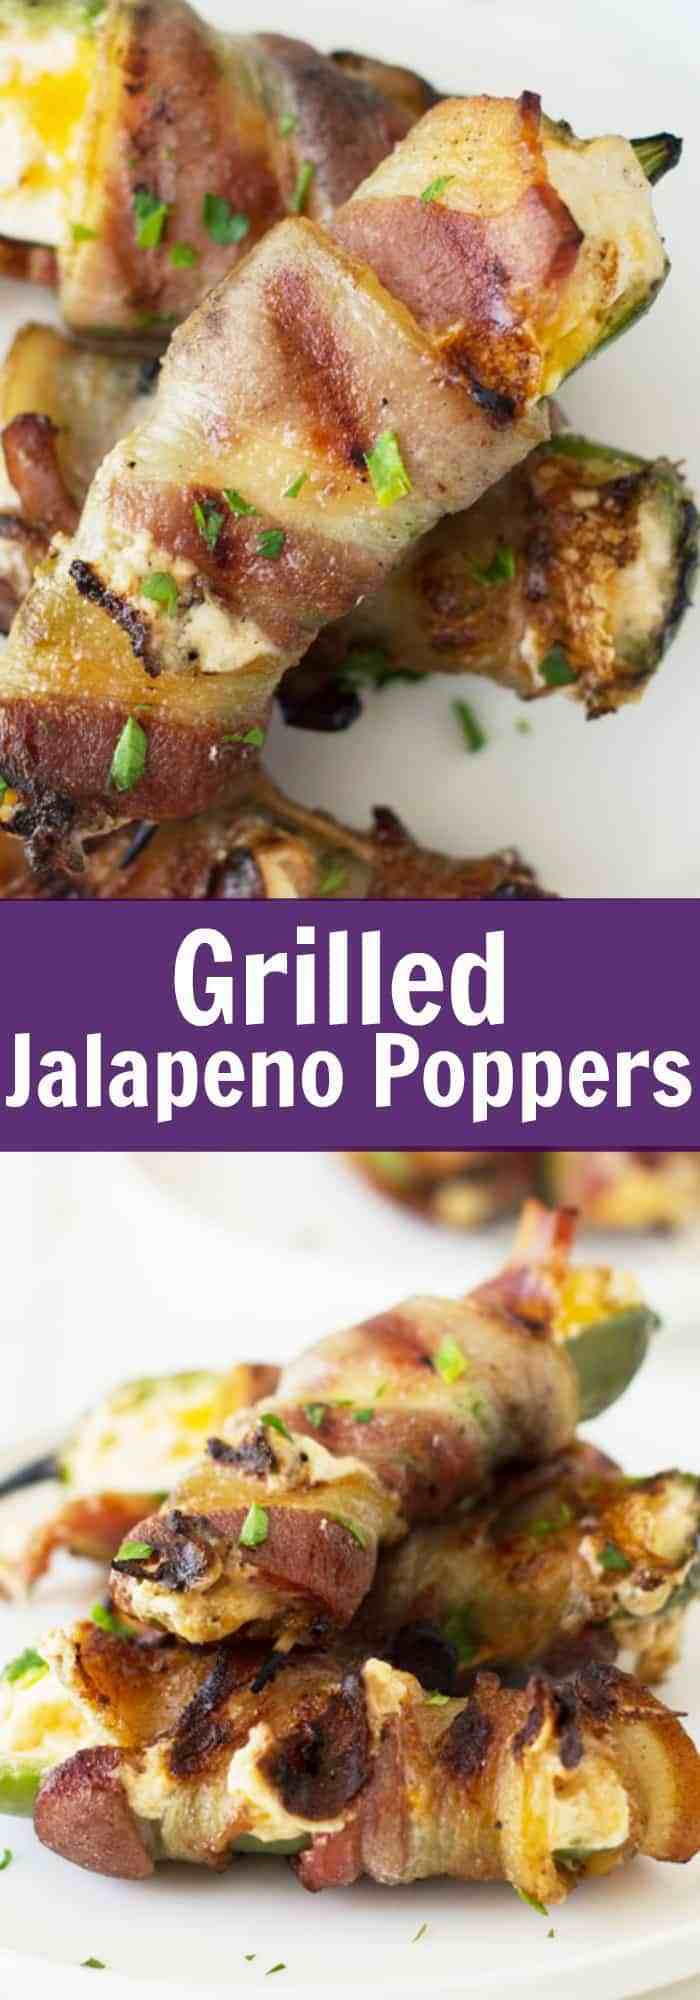 Grilled Jalapeno Poppers  Grilled Jalapeno Poppers Countryside Cravings